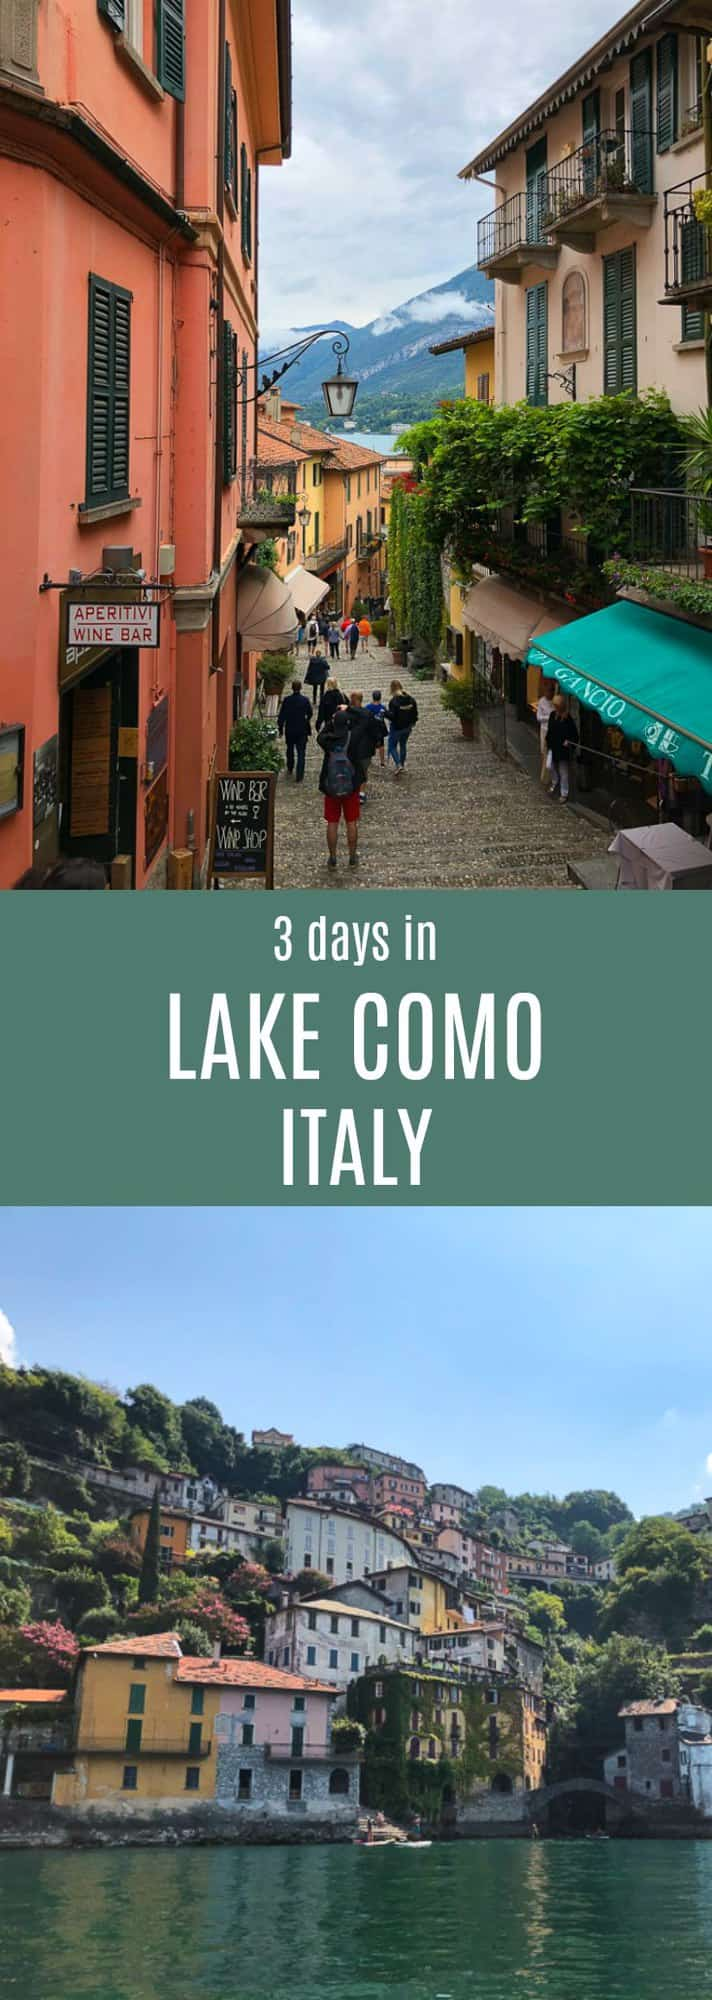 A guide for what to see and where to eat during 3 days in Lake Como, Italy. #travel #italy #lakecomo